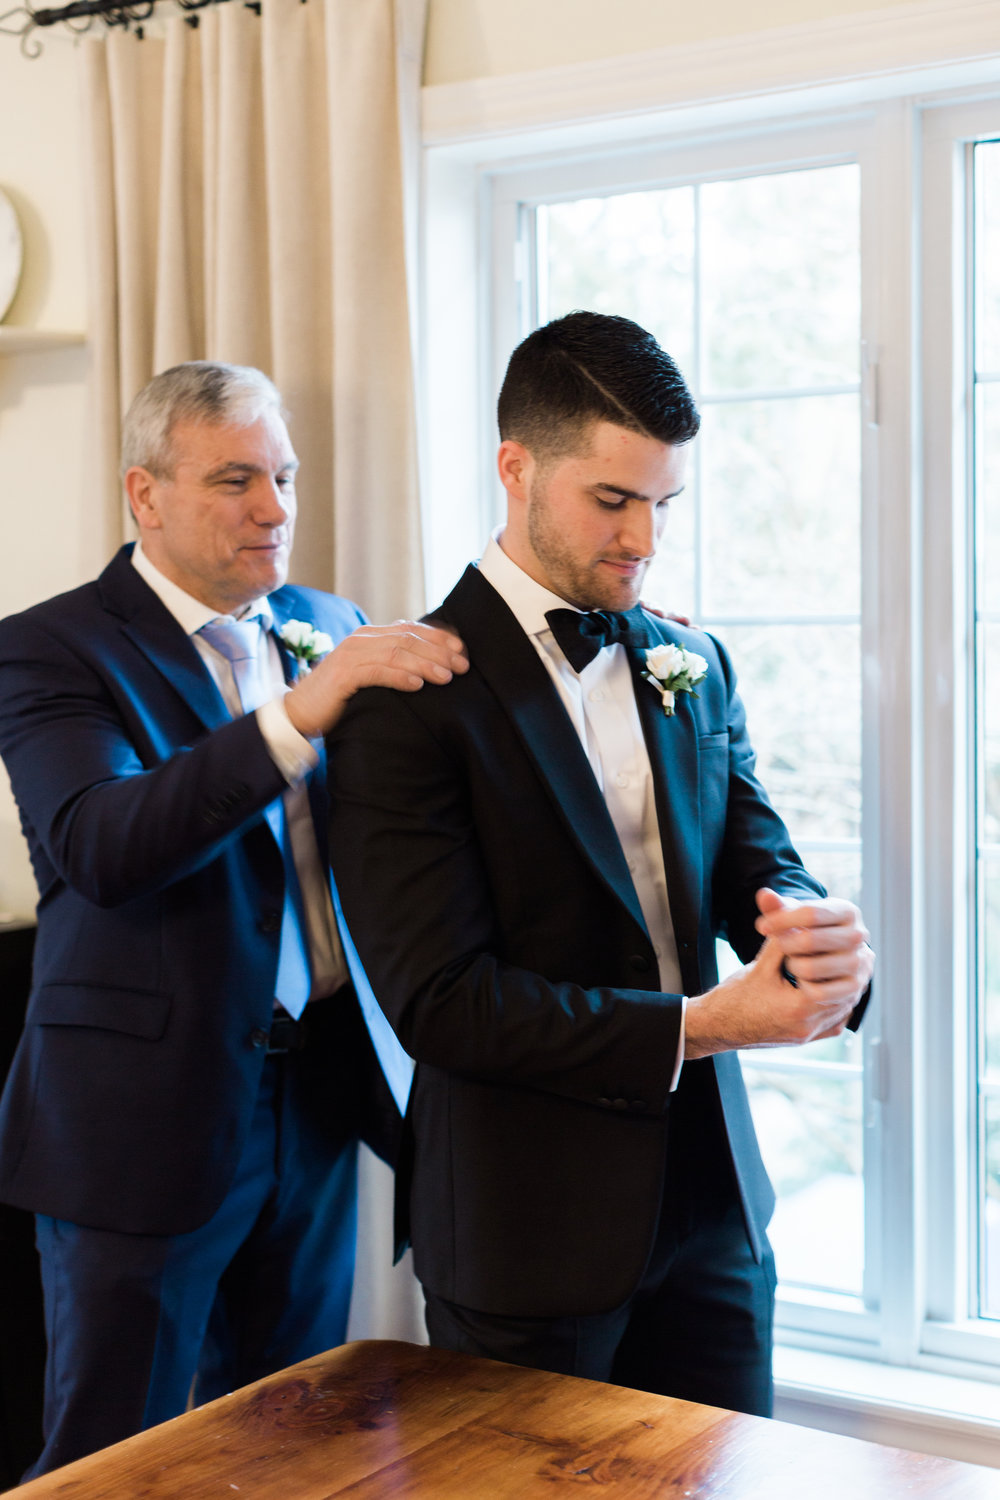 The Manor Winter Wedding - Groom Getting Ready-10.jpg